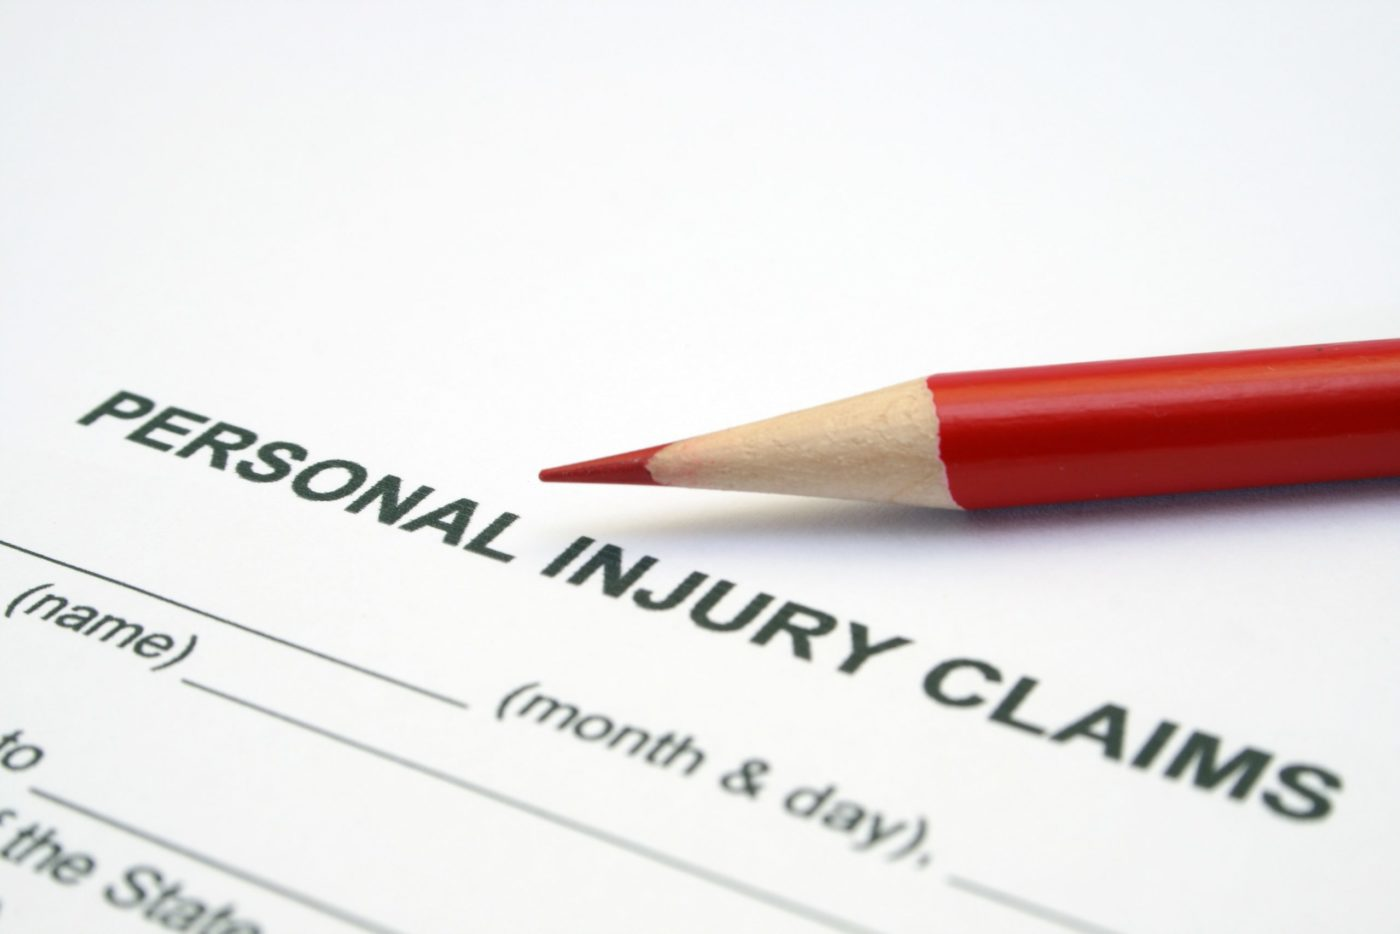 Faulty Safety Equipment Leading to Personal Injury Results in Large Settlement